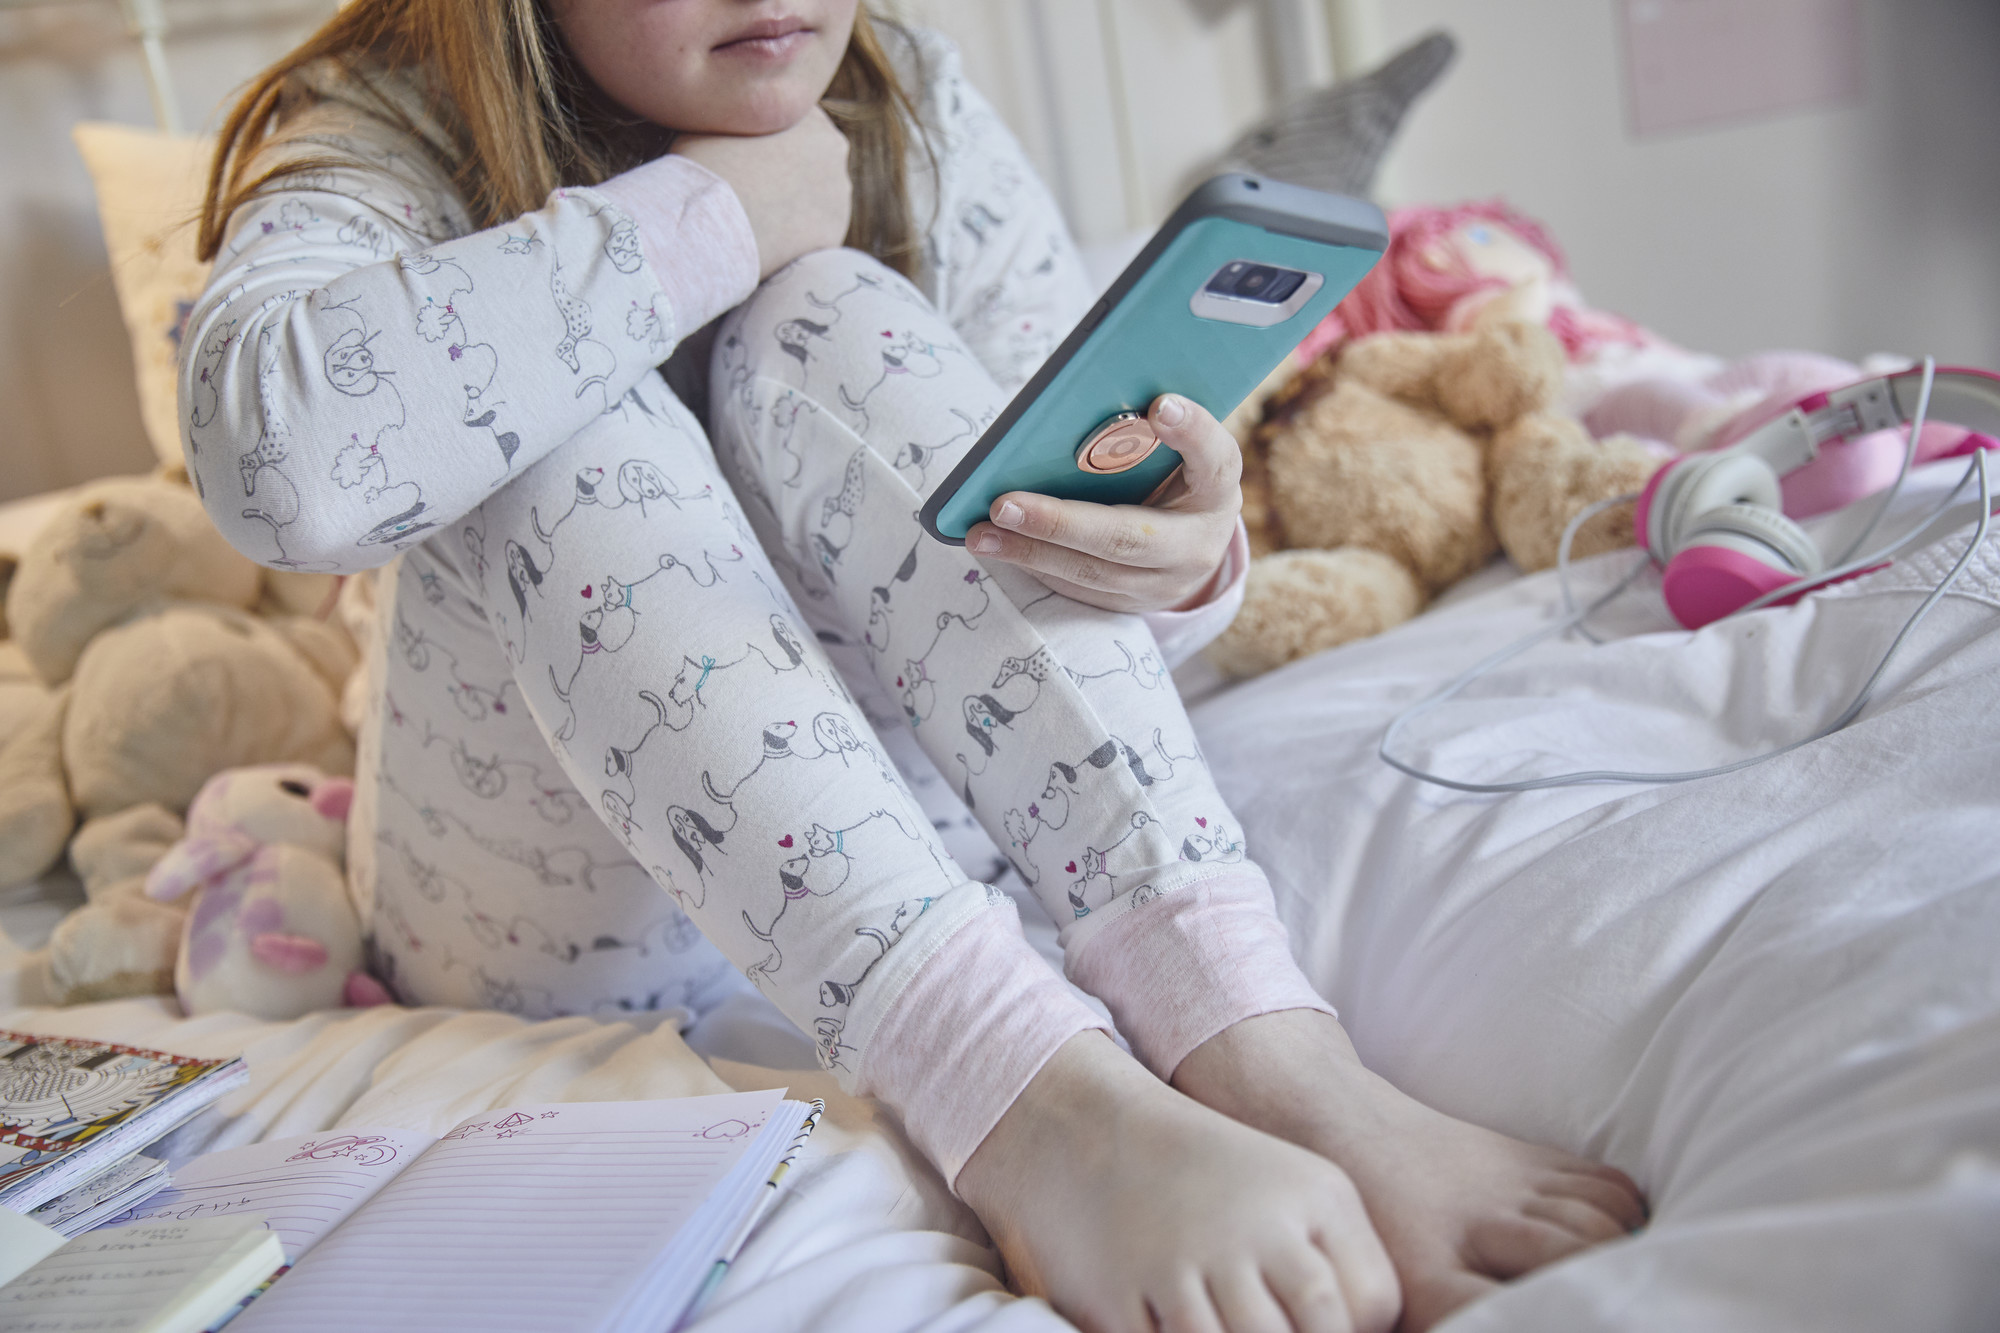 NSPCC finds 70 per cent increase in online child sex offences in past 4 years